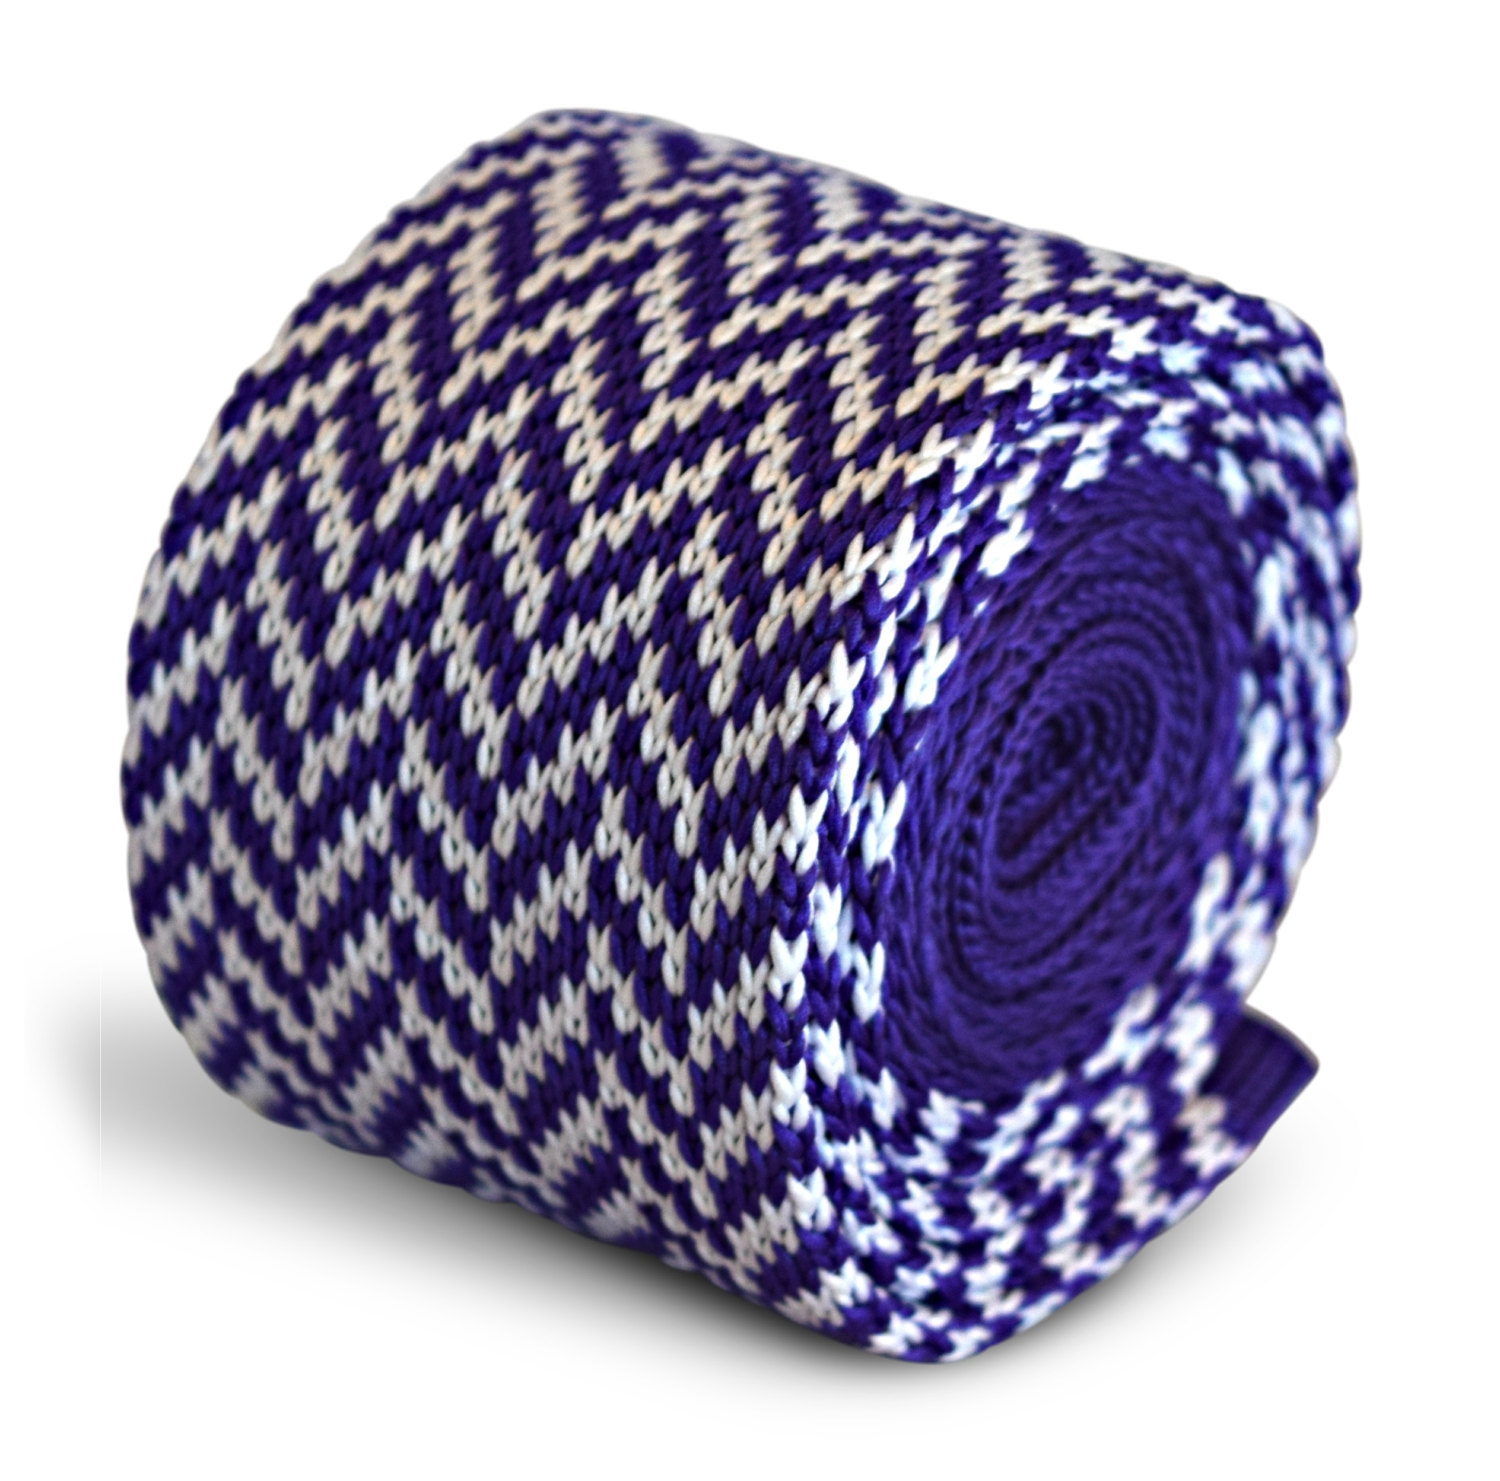 cadbury purple and white herringbone knitted skinny tie by Frederick Thomas FT32